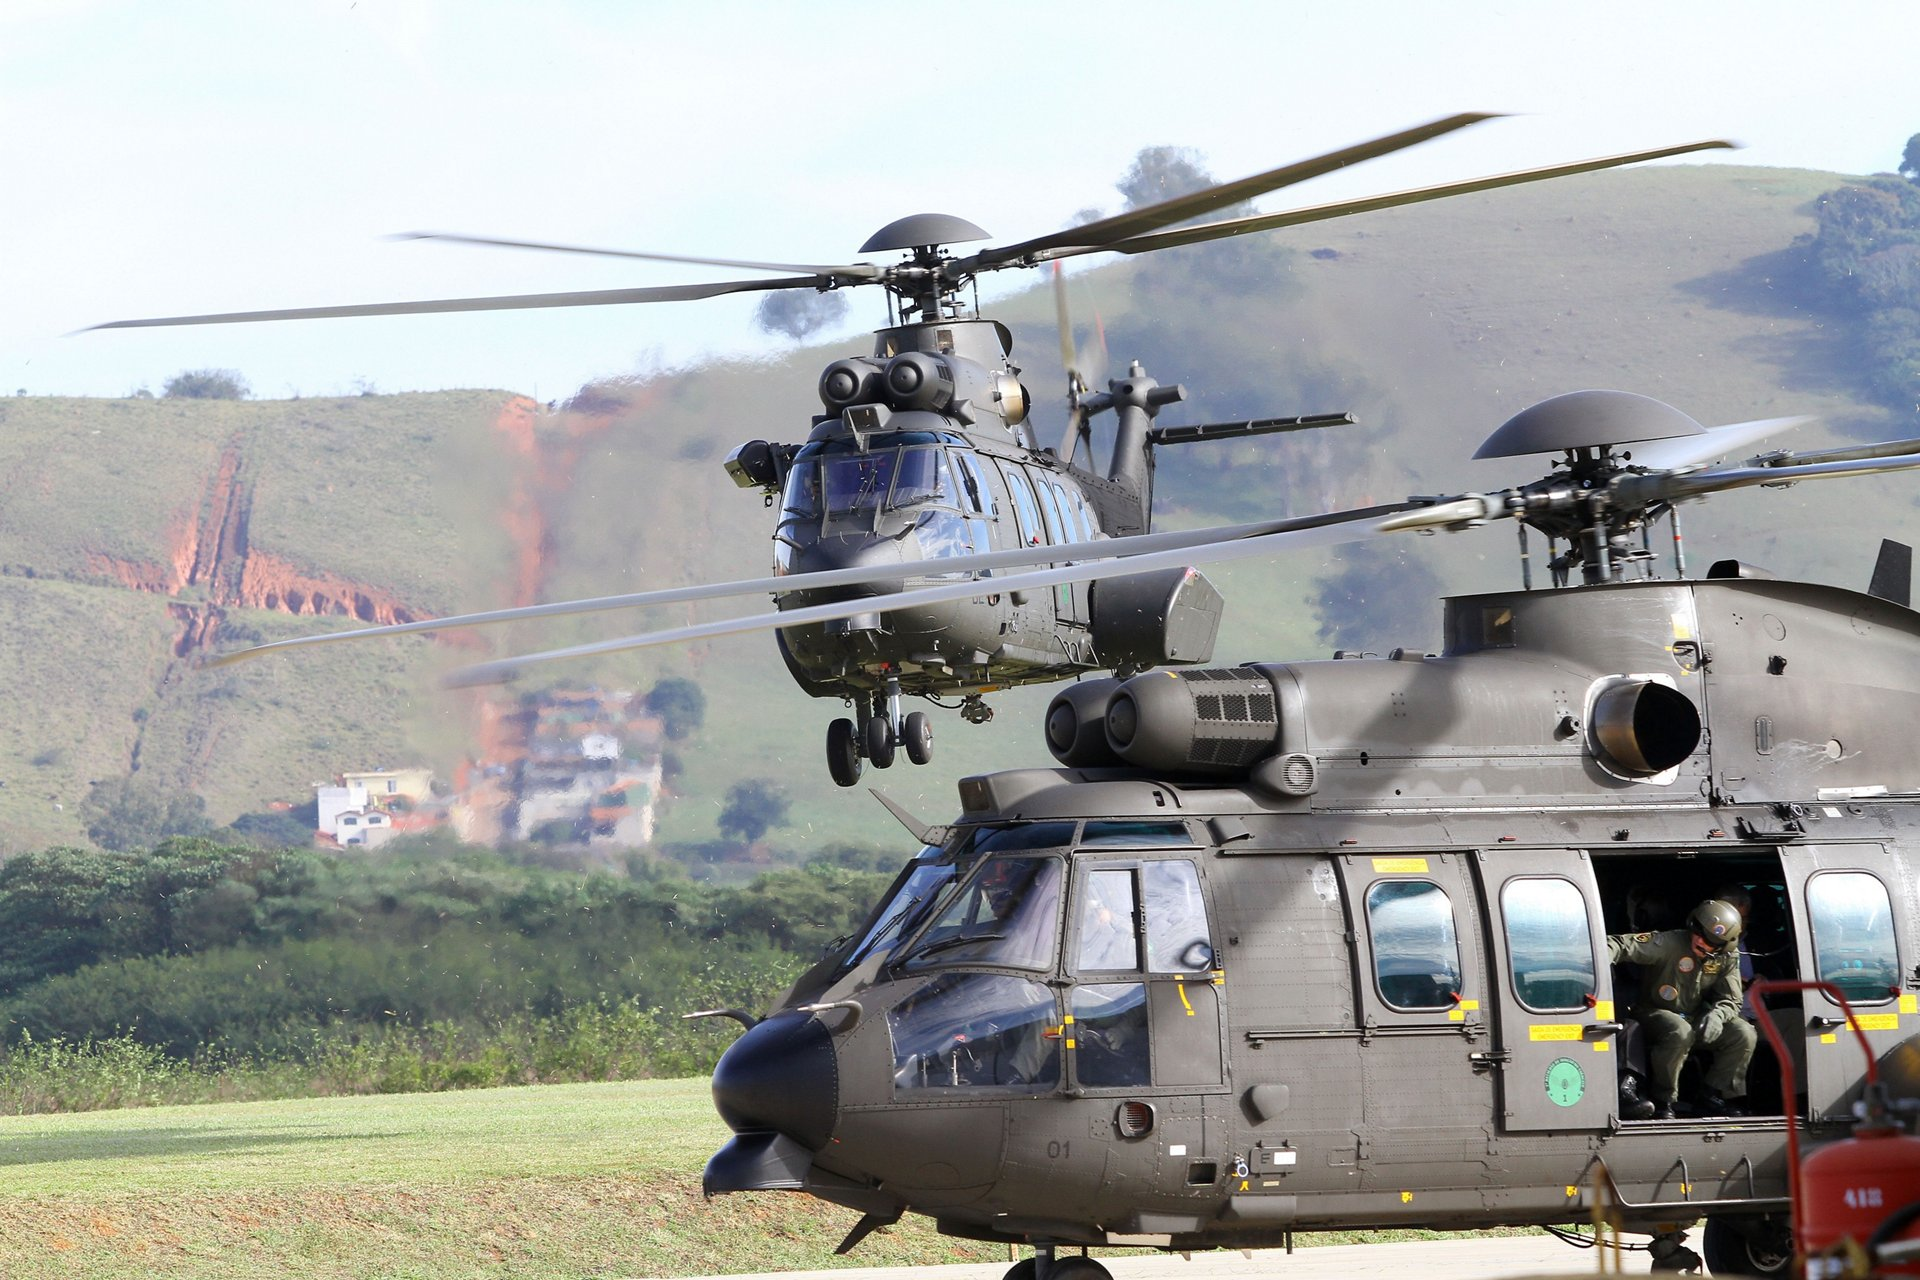 An H225M is shown in flight, with another on the ground.